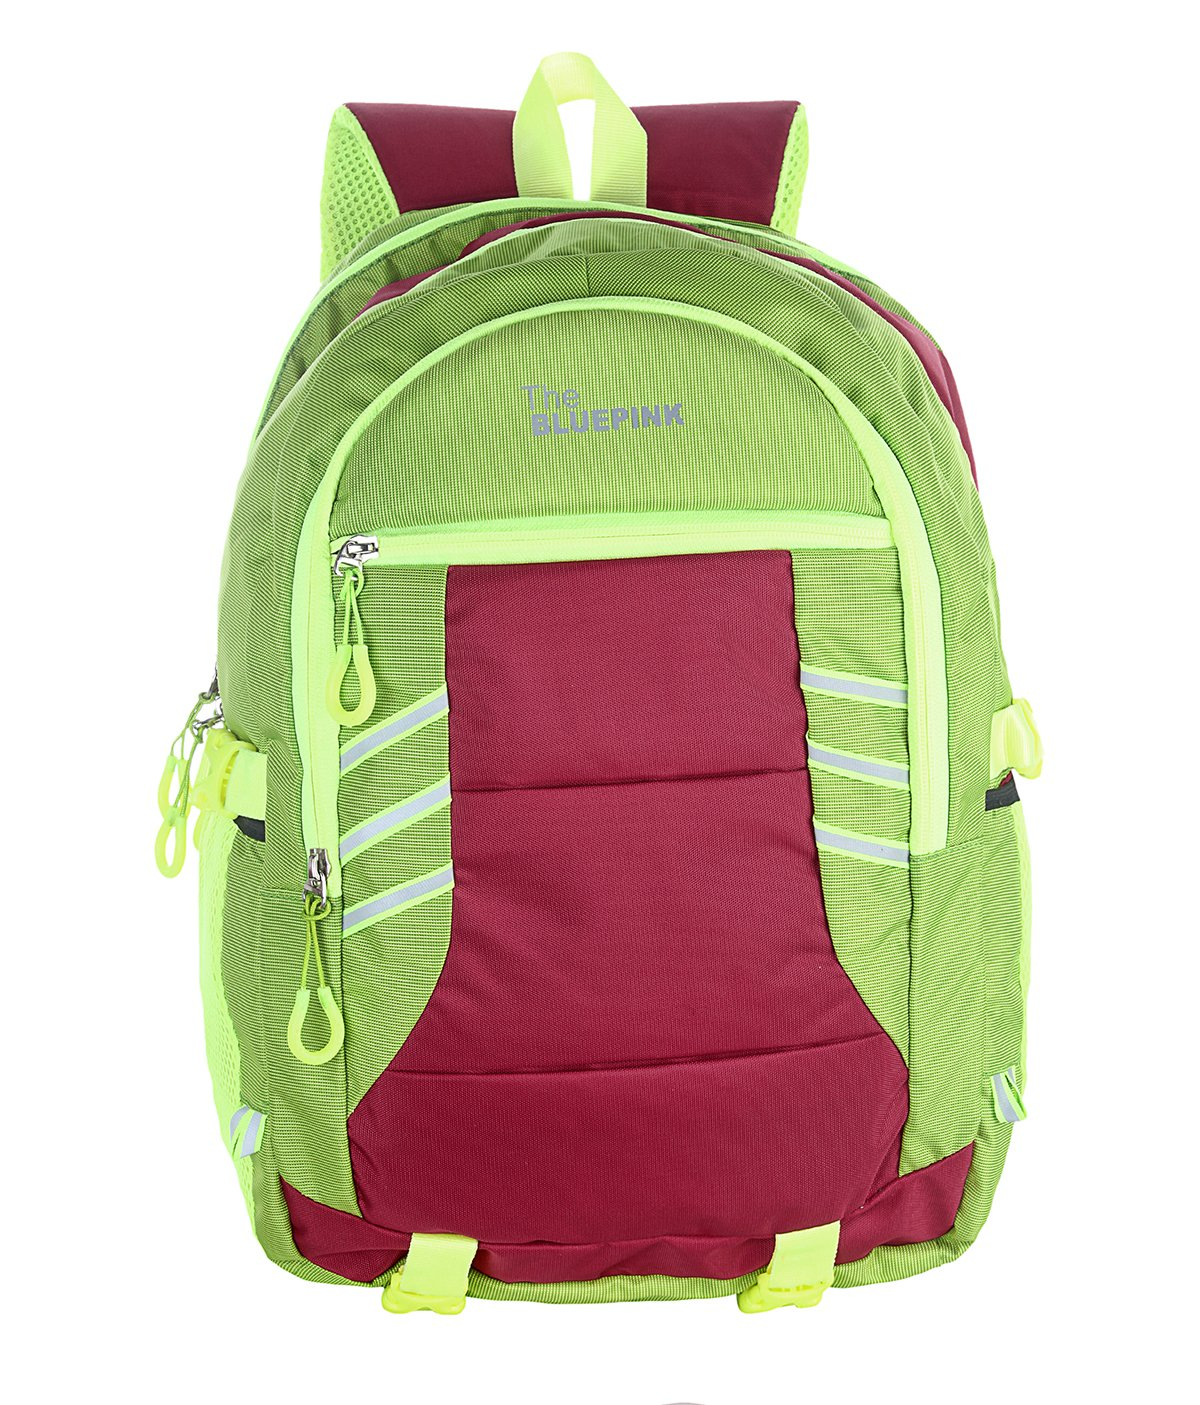 Dussledorf Brad Green Casual Backpack With Adjustable Strap And Laptop Compartment (BRAD-1114)